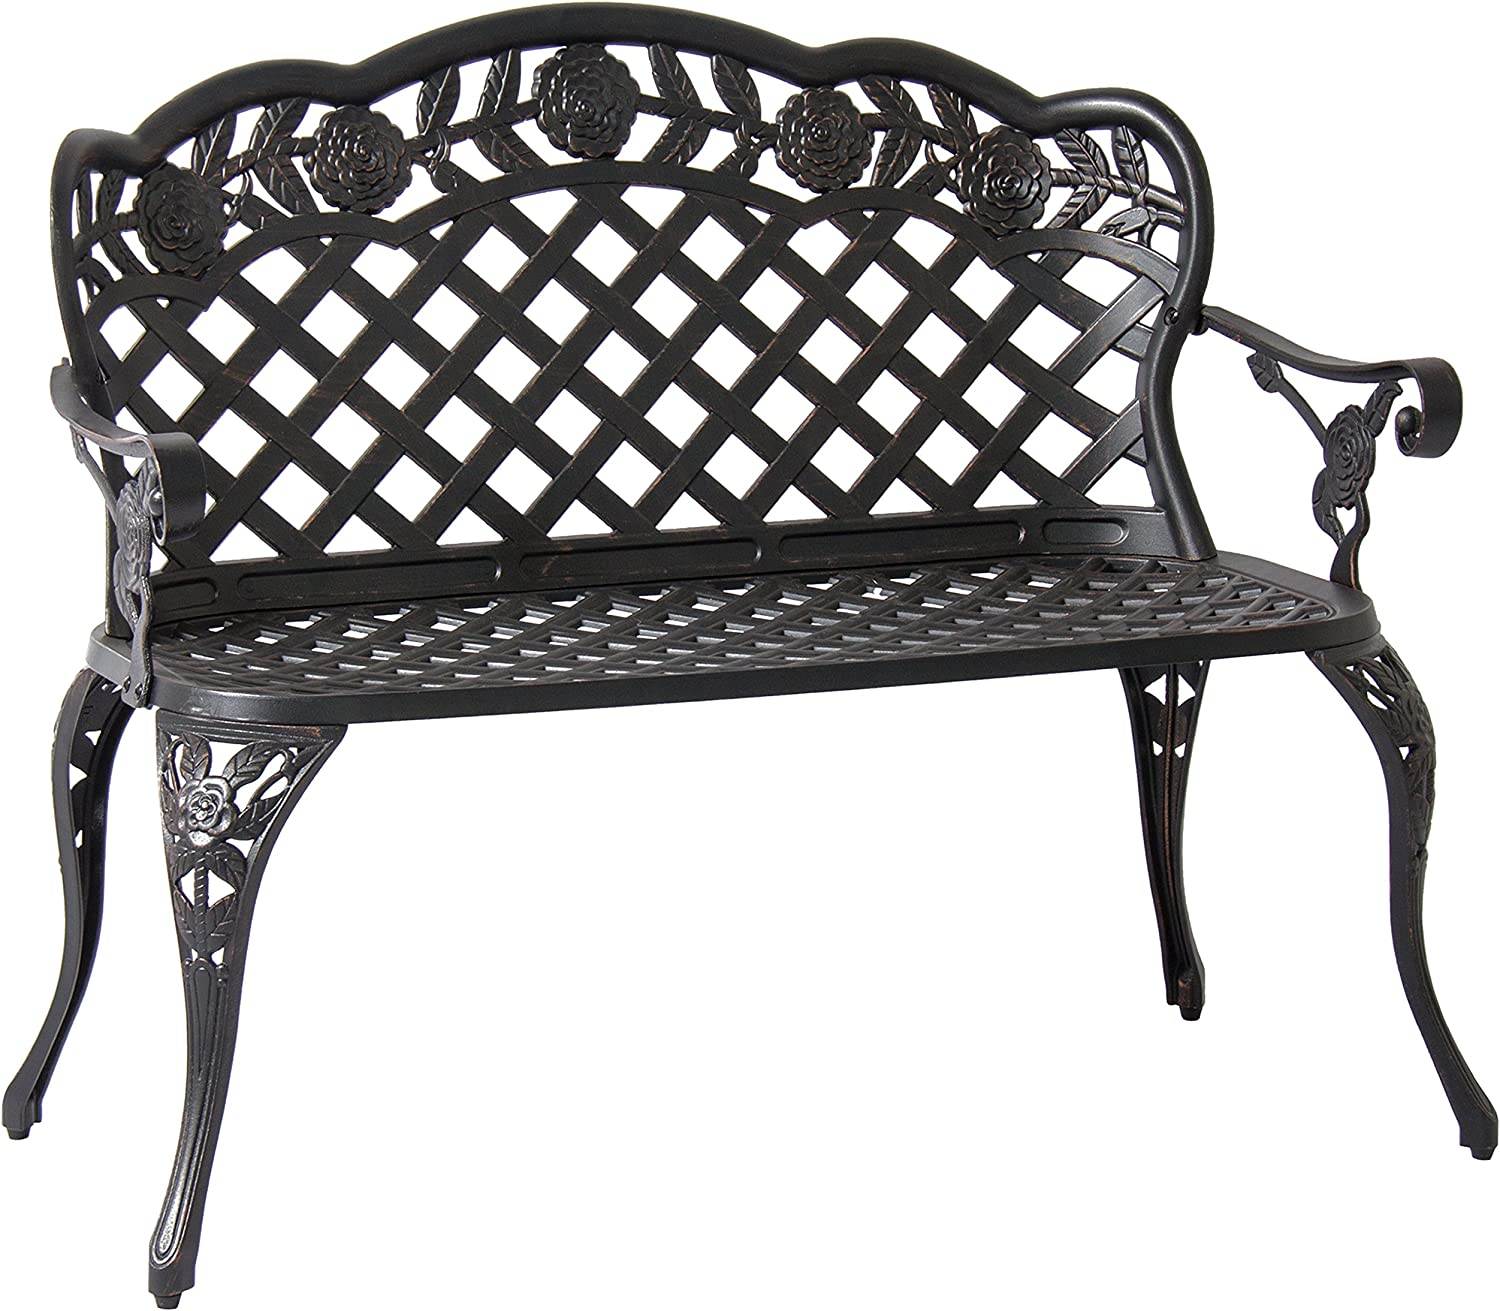 Best Choice Products Patio Garden Bench Cast Aluminum Outdoor Garden Yard Solid Construction New – Bronze